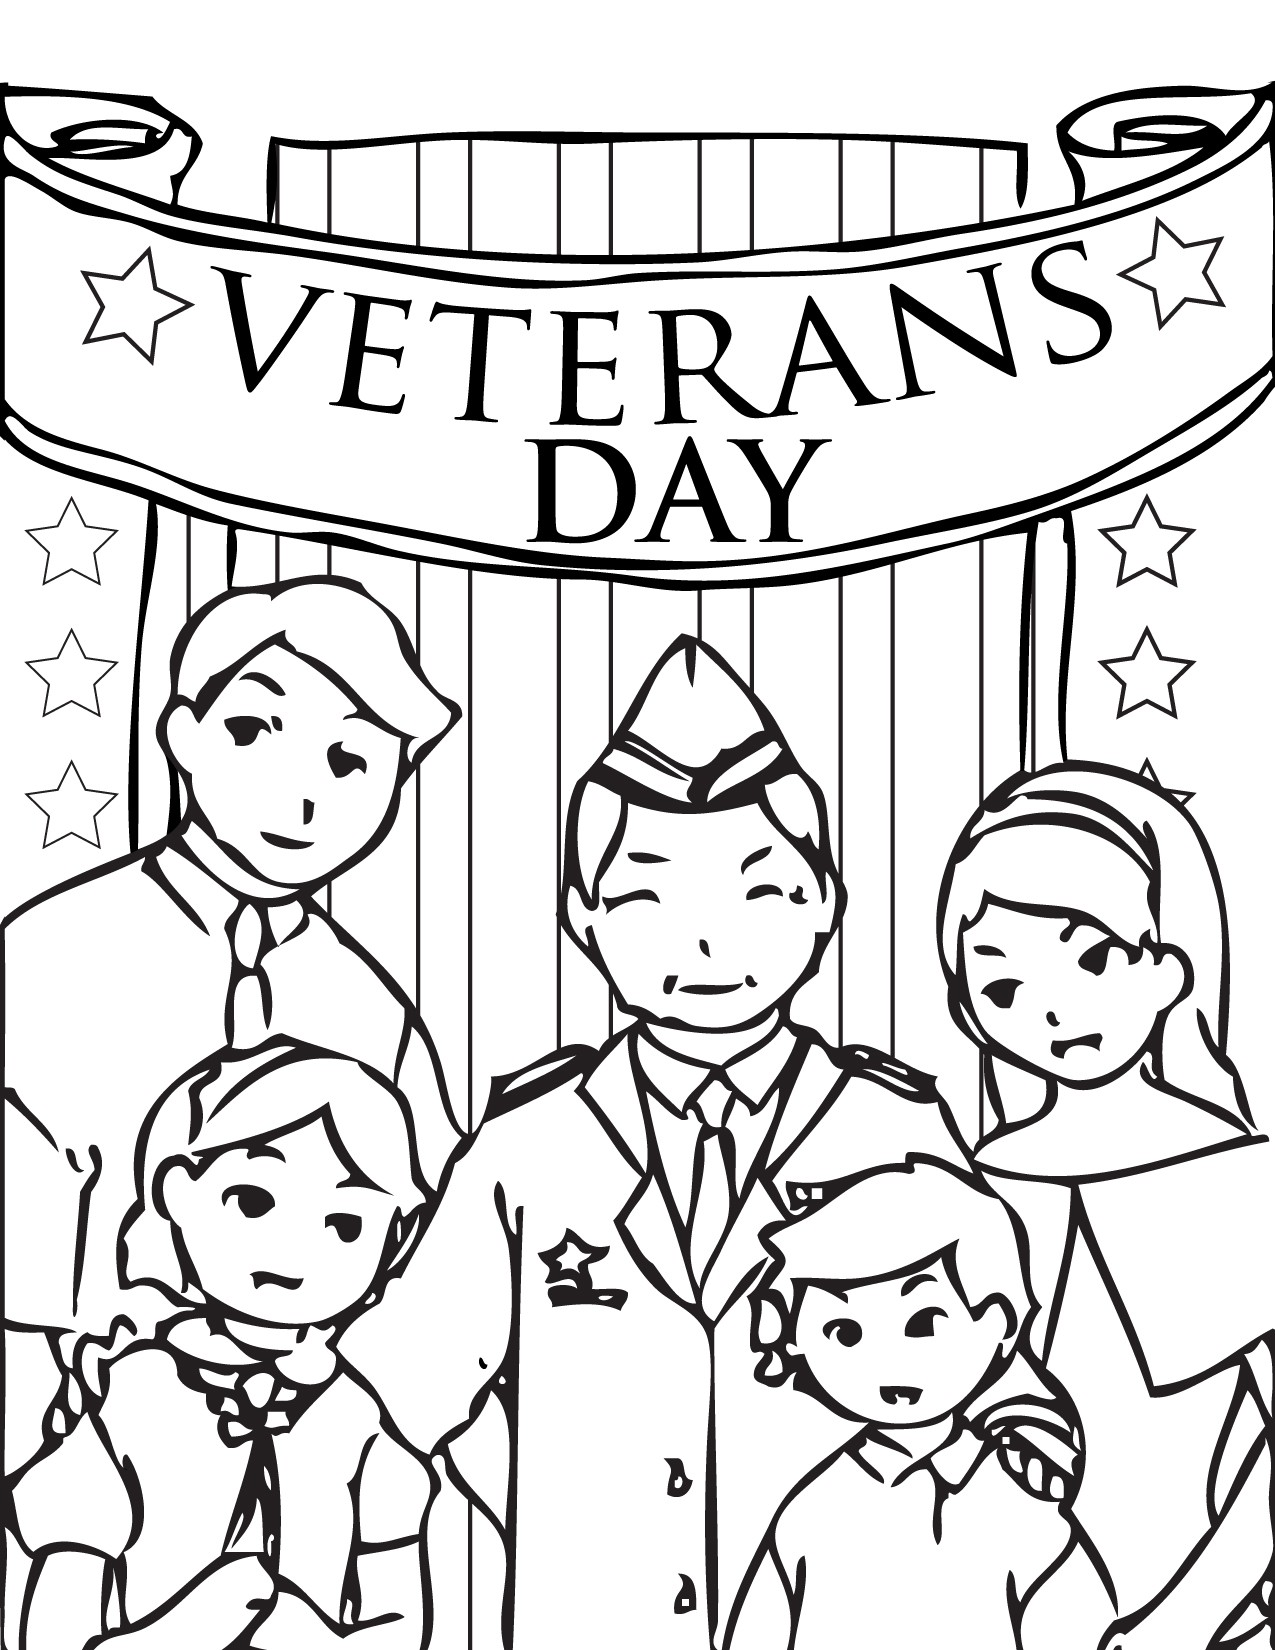 Free Coloring Pages For Veterans Day At Getdrawings